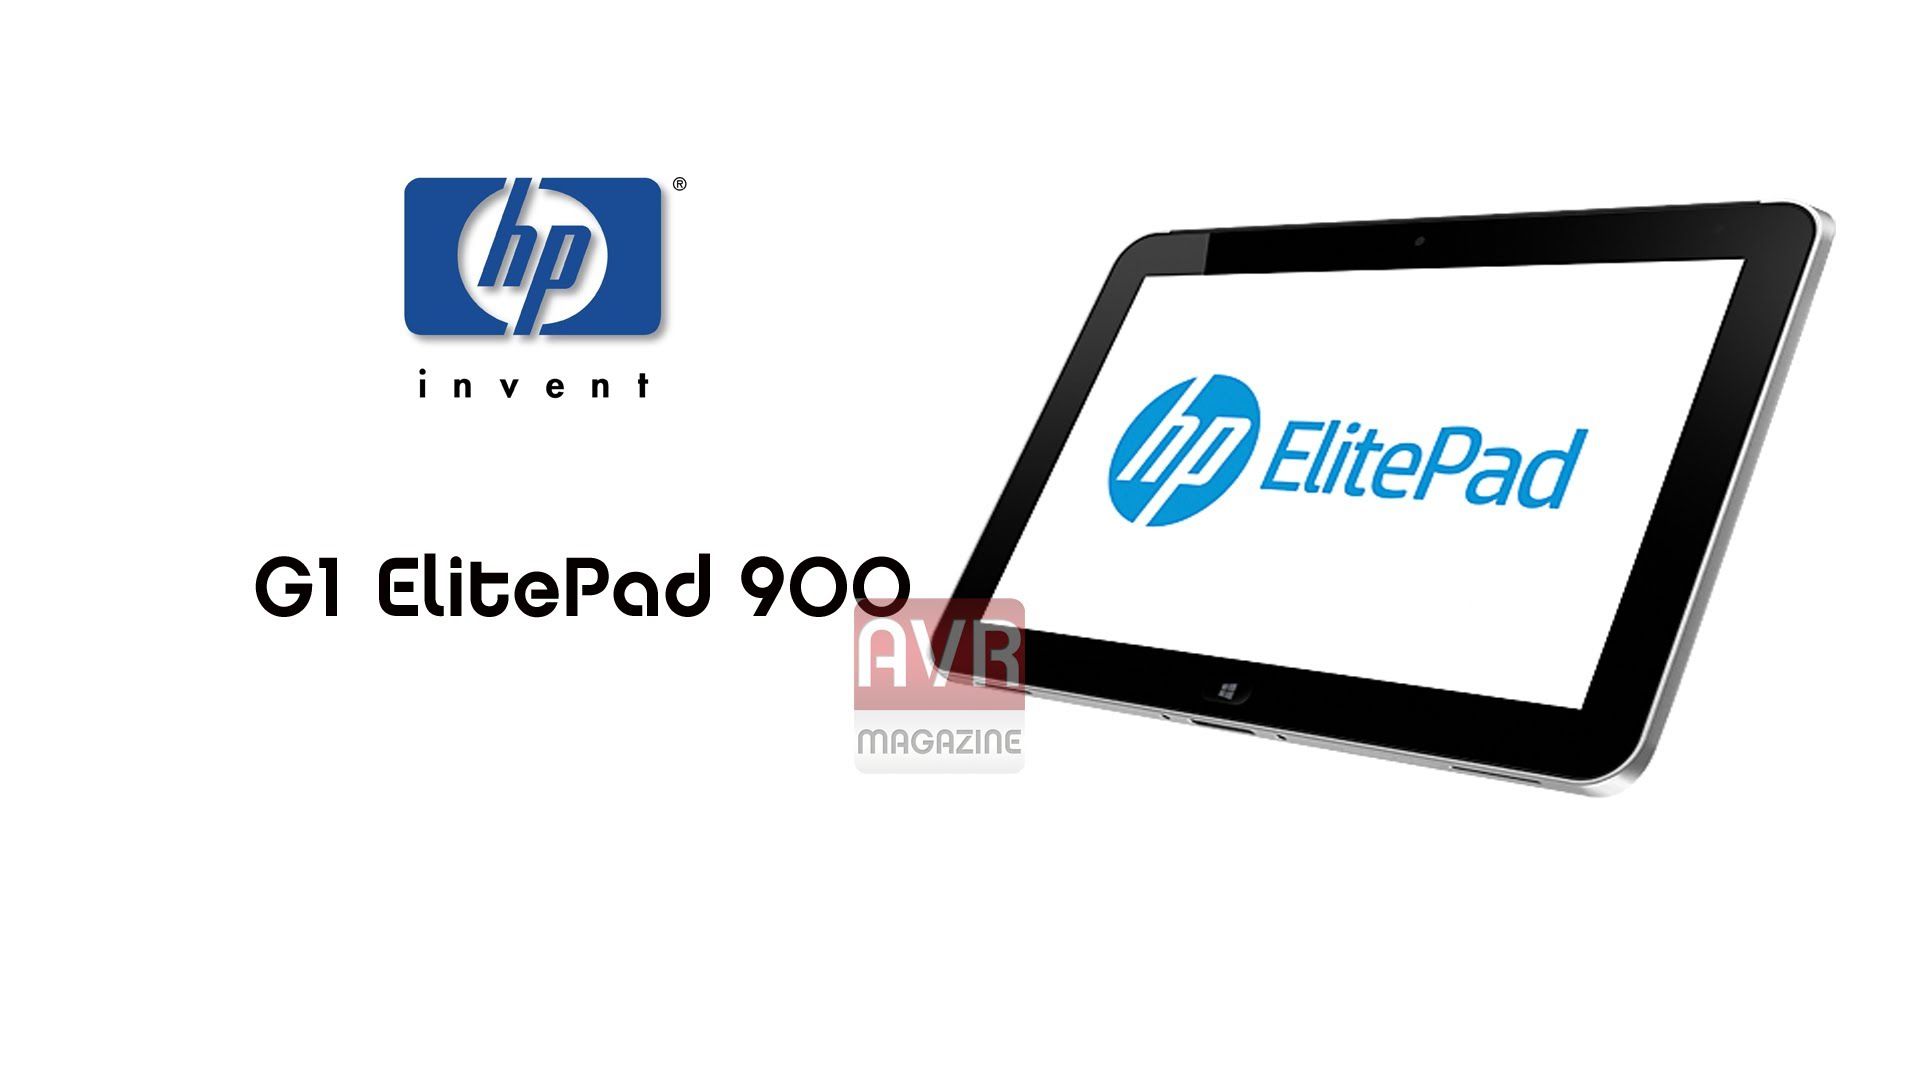 HP G1 ElitePad 900 - Ottimo tablet Windows 8 - Video Recensione AVRMagazine.com